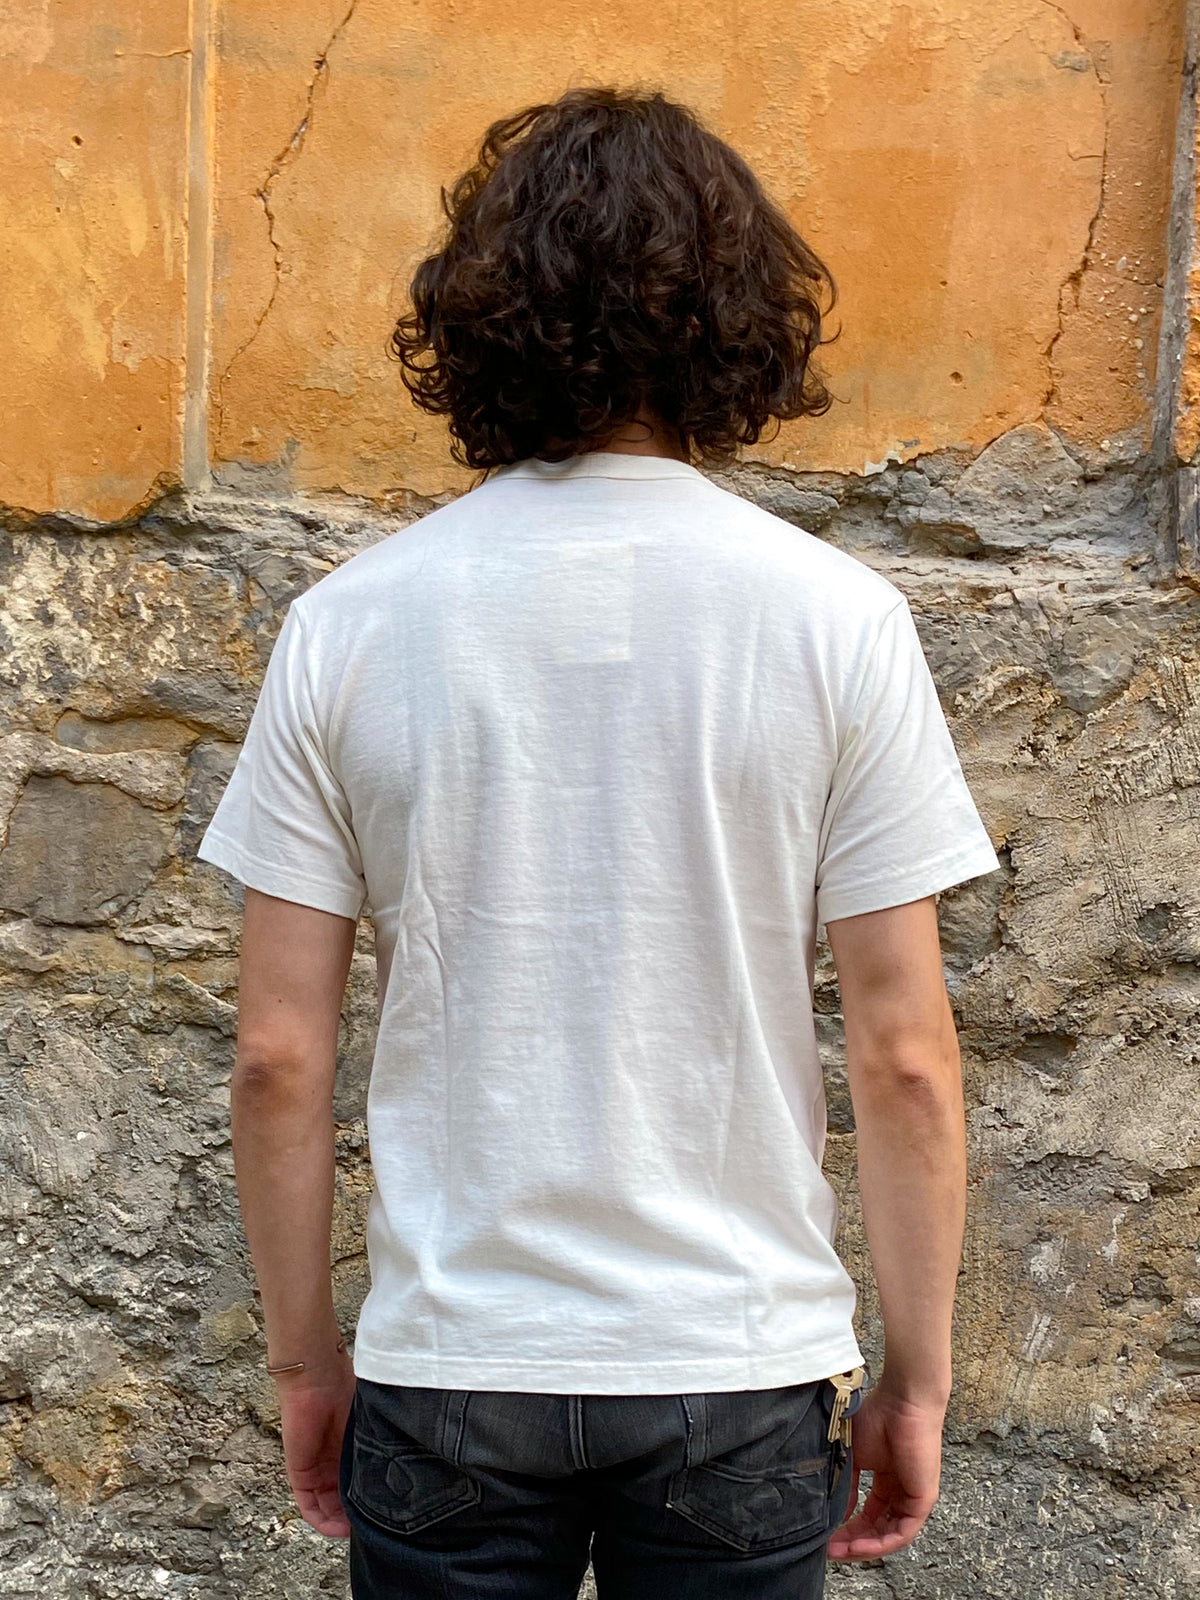 IHT-1610L - 6.5oz Loopwheel Crew Neck T-Shirt with longer body - White